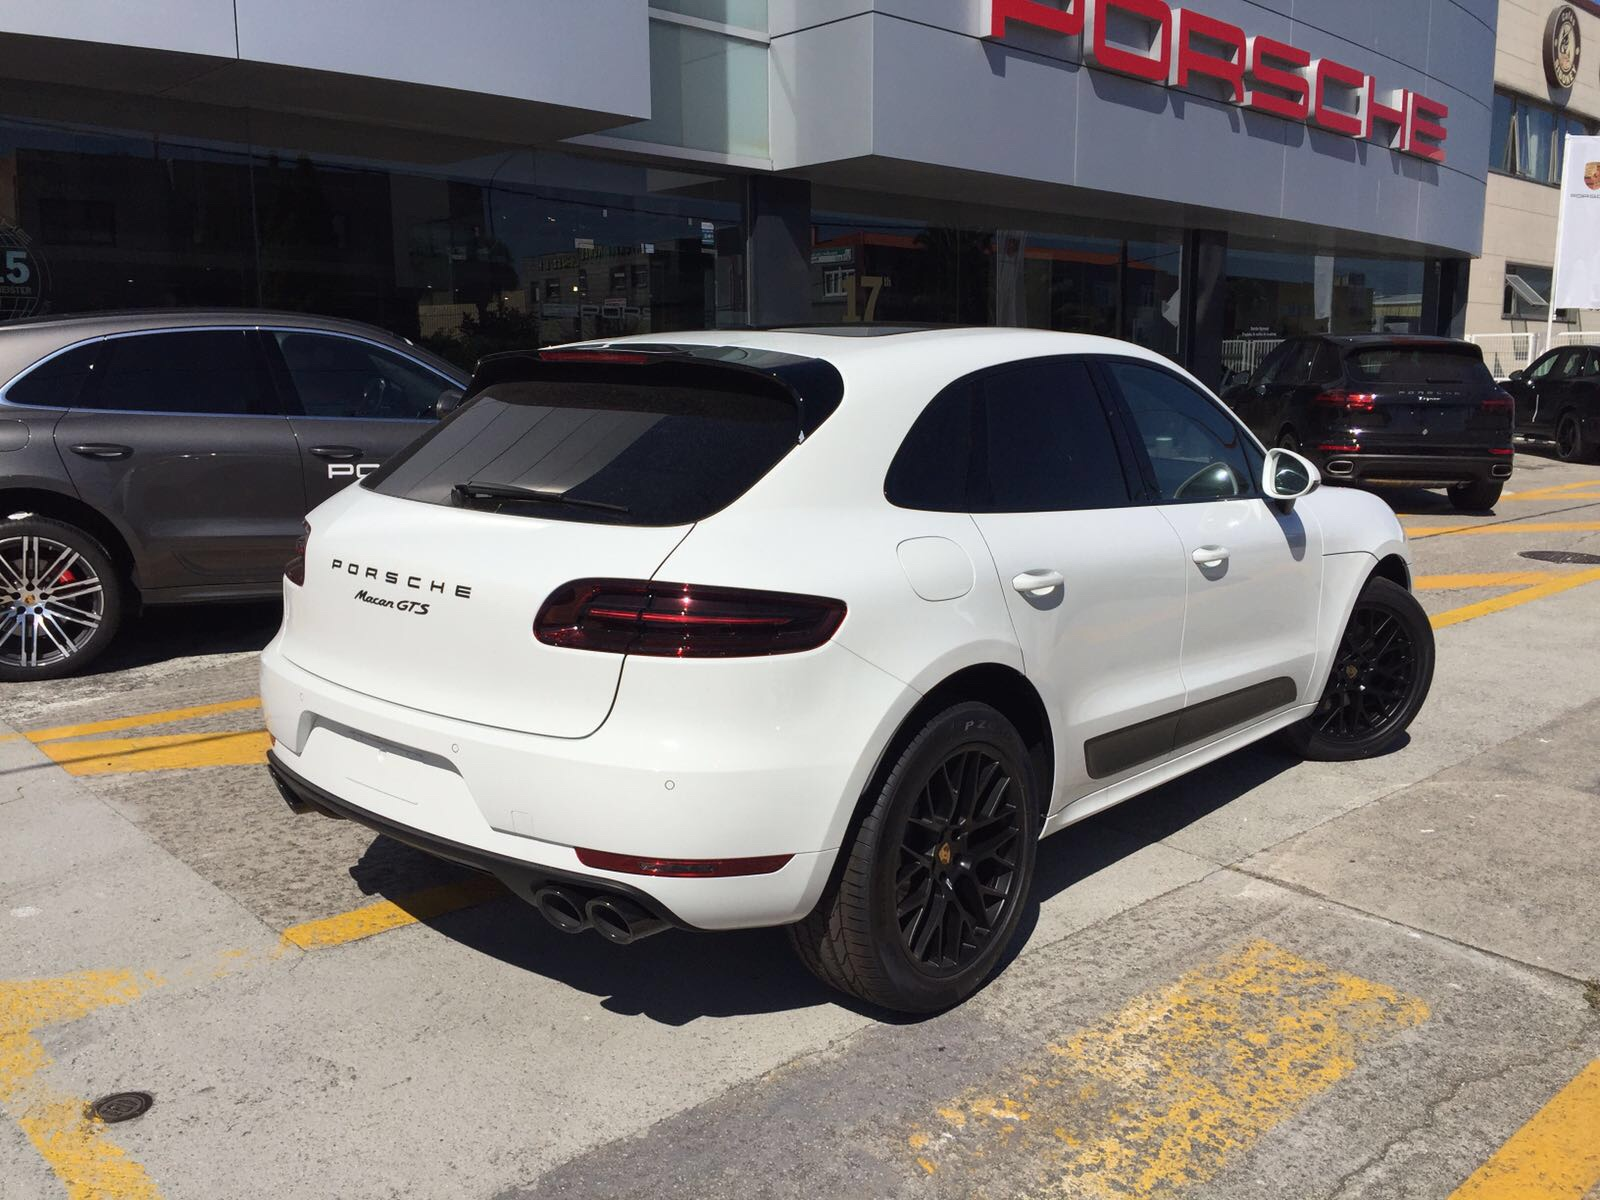 my17 macan images page 31 porsche macan forum. Black Bedroom Furniture Sets. Home Design Ideas